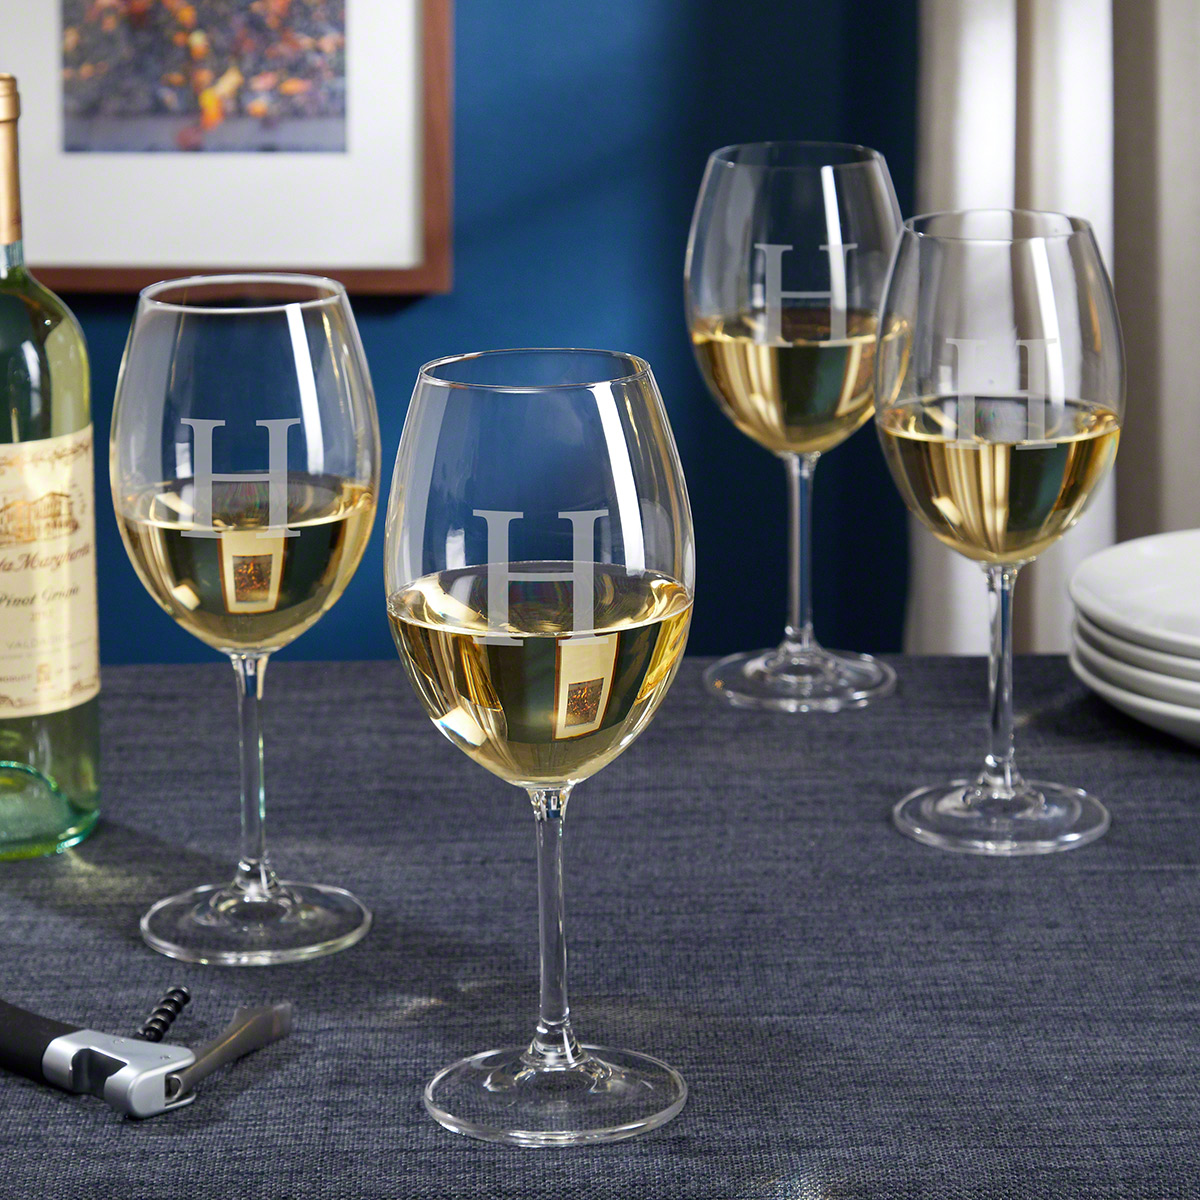 Set-of-4-Personalized-White-Wine-Glasses